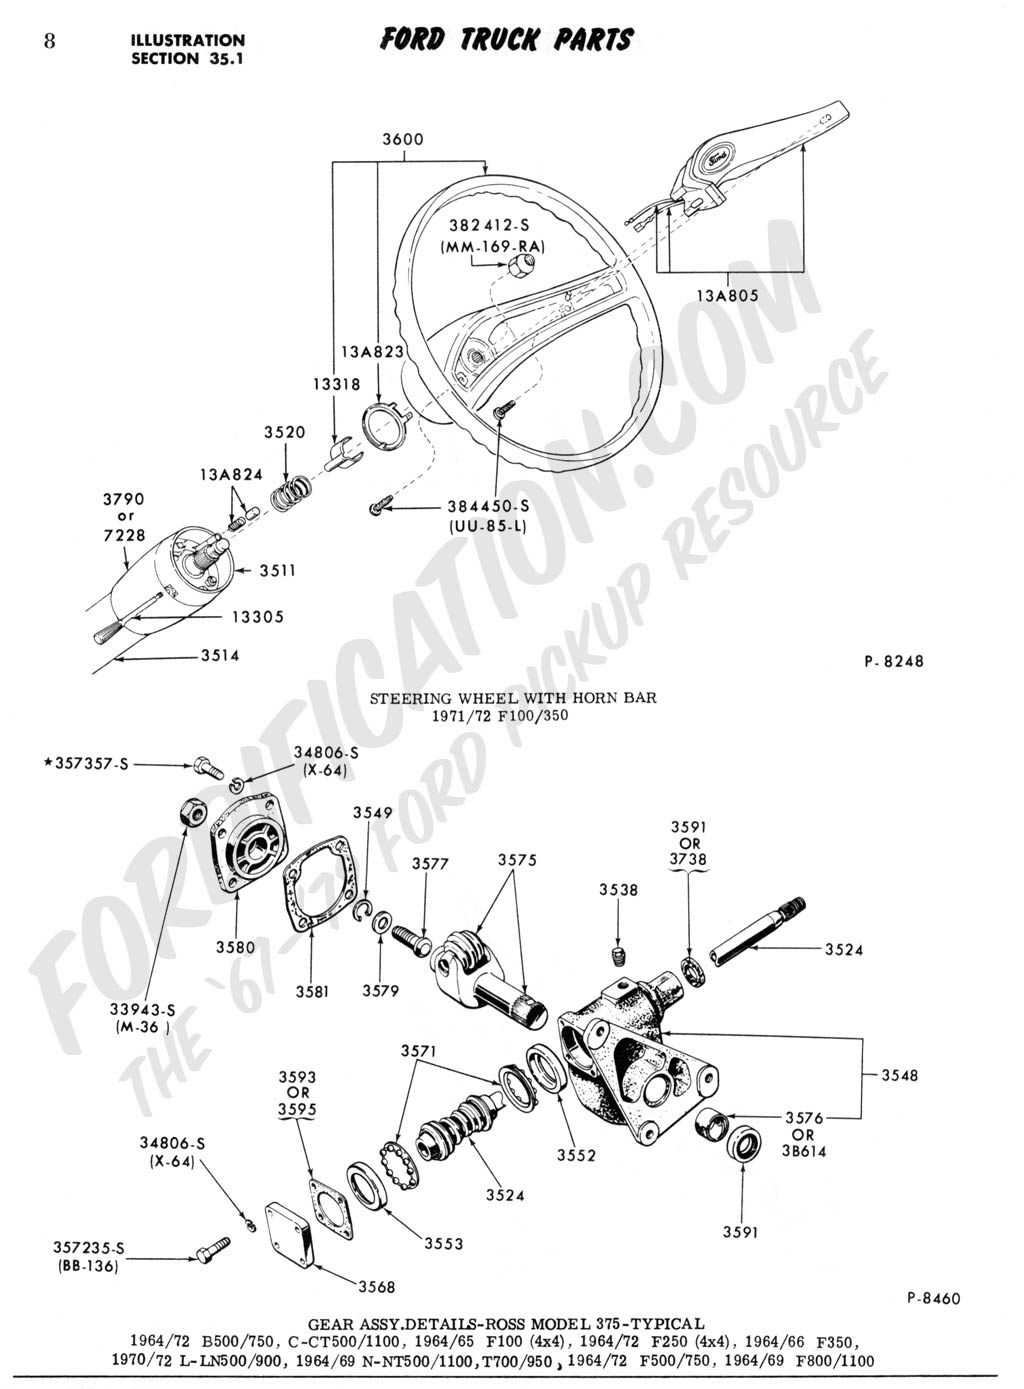 1970 Ford F100 Wiring Diagram Collection - Wiring Diagram ...